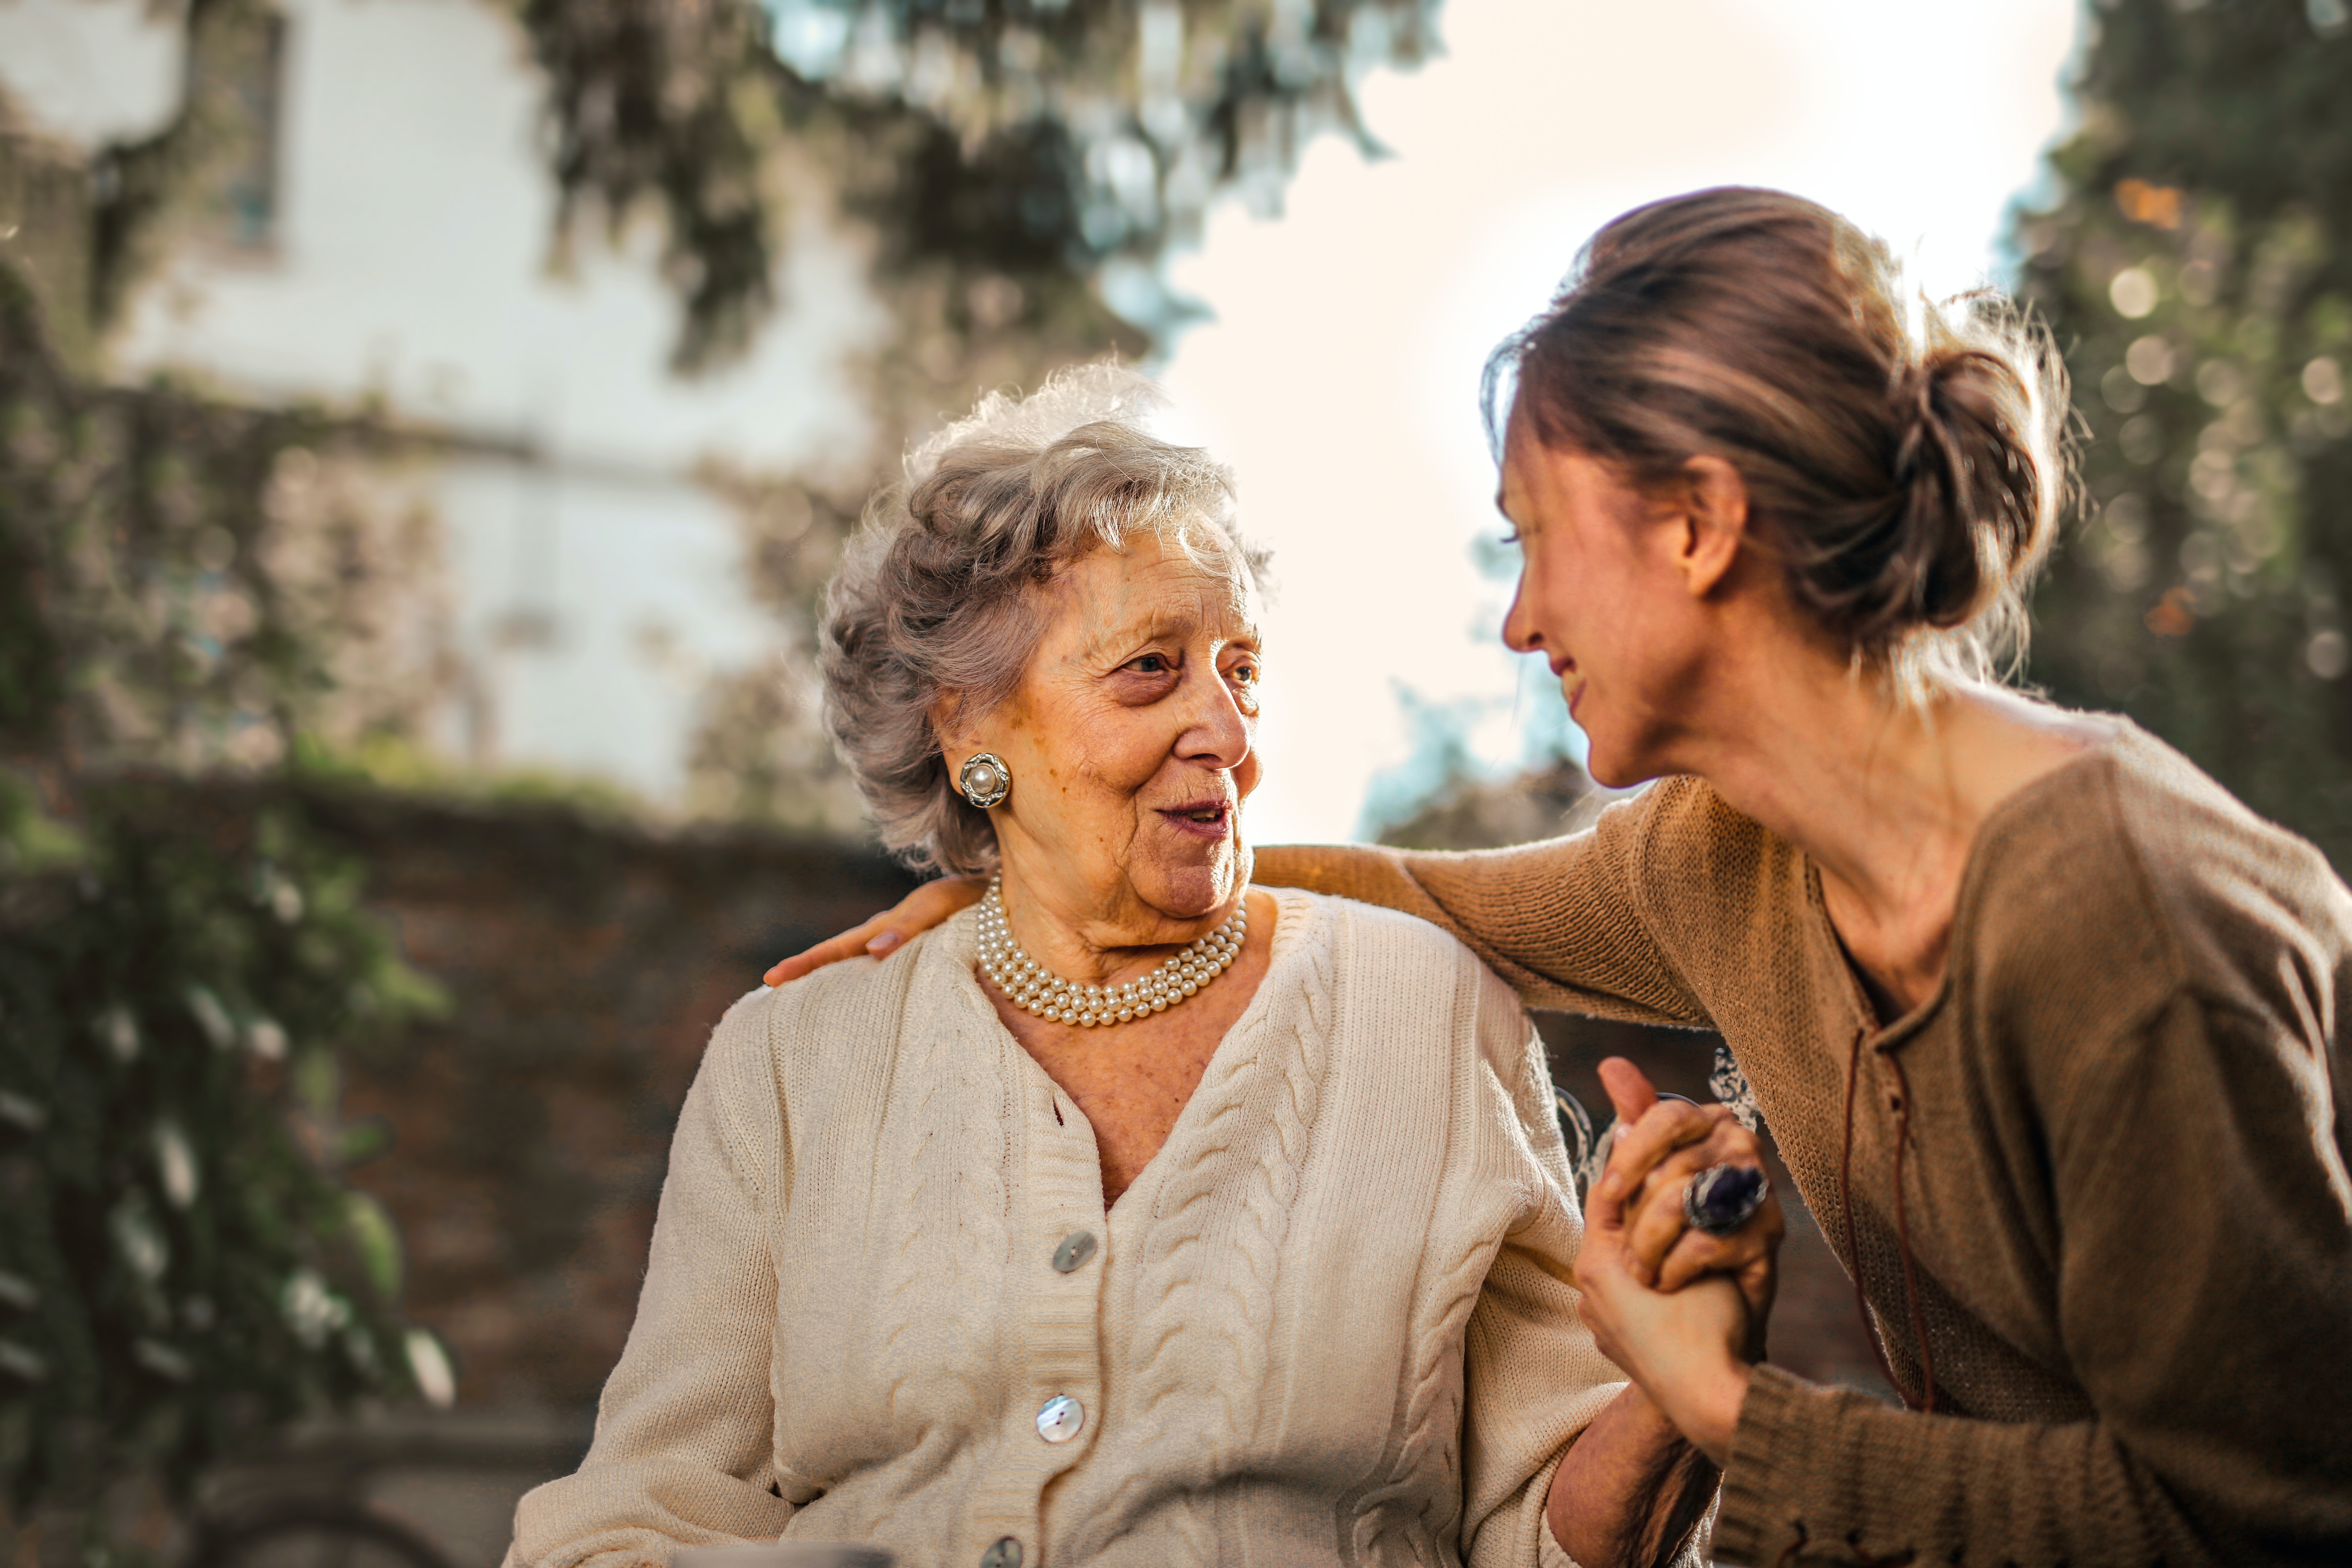 Problems Seniors Face in Their Old Age